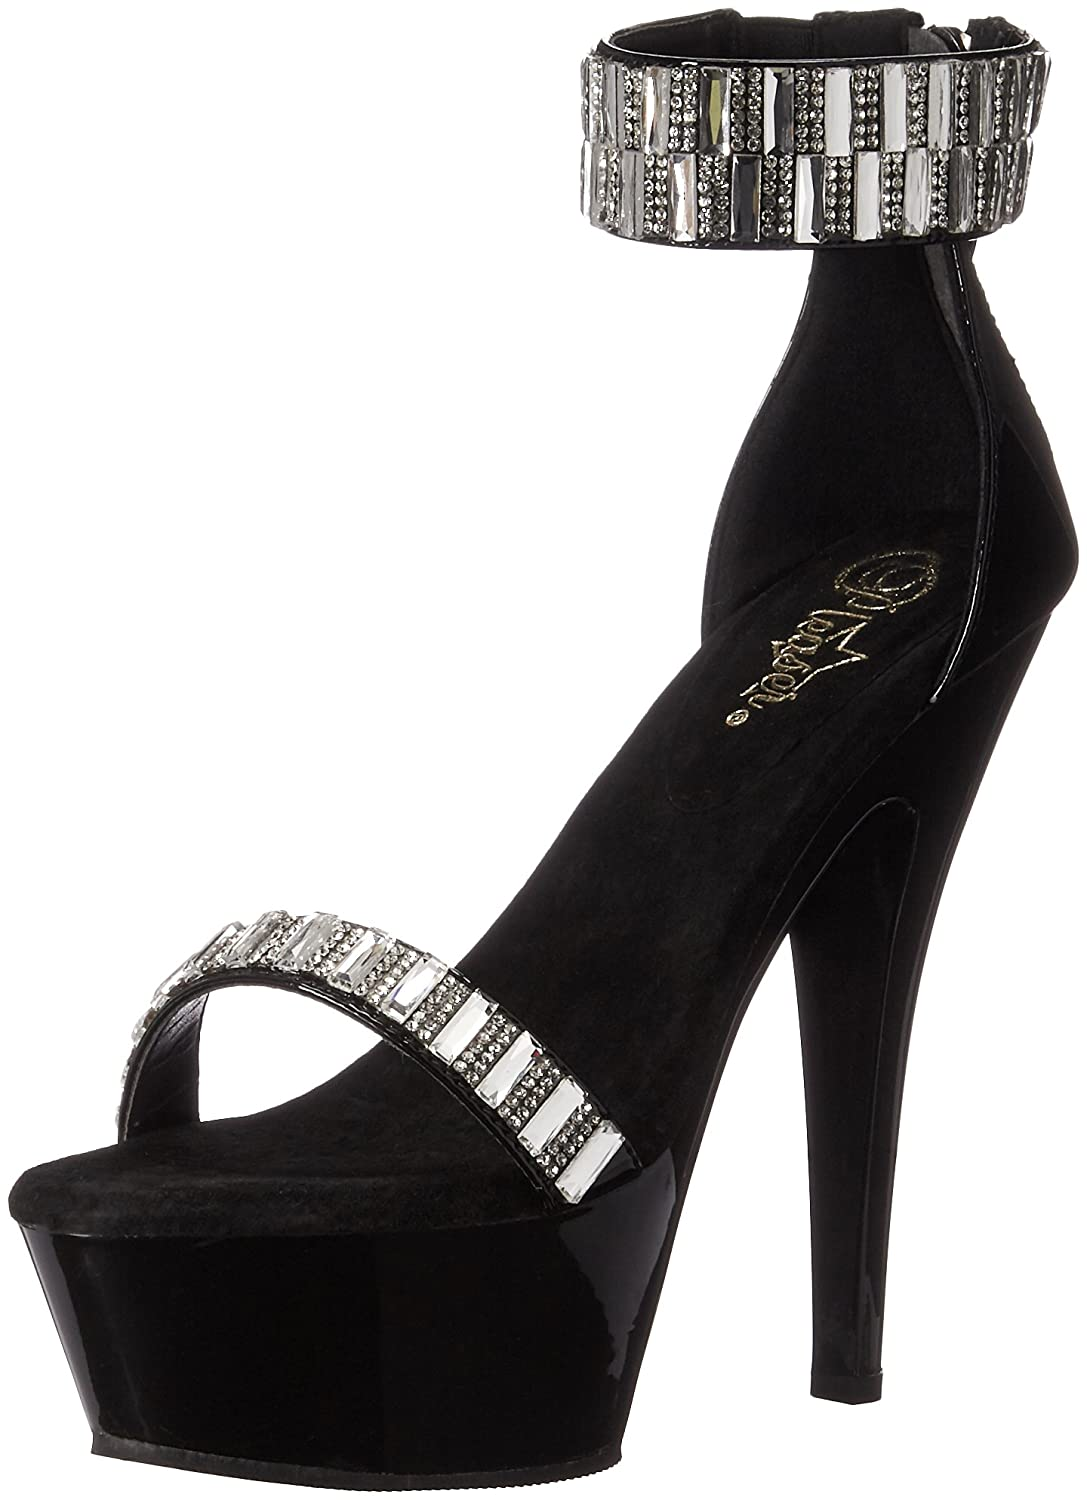 Pleaser Women's Kiss269rs/b/m Platform Sandal B01ABTDK9W 7 B(M) US|Black/Black